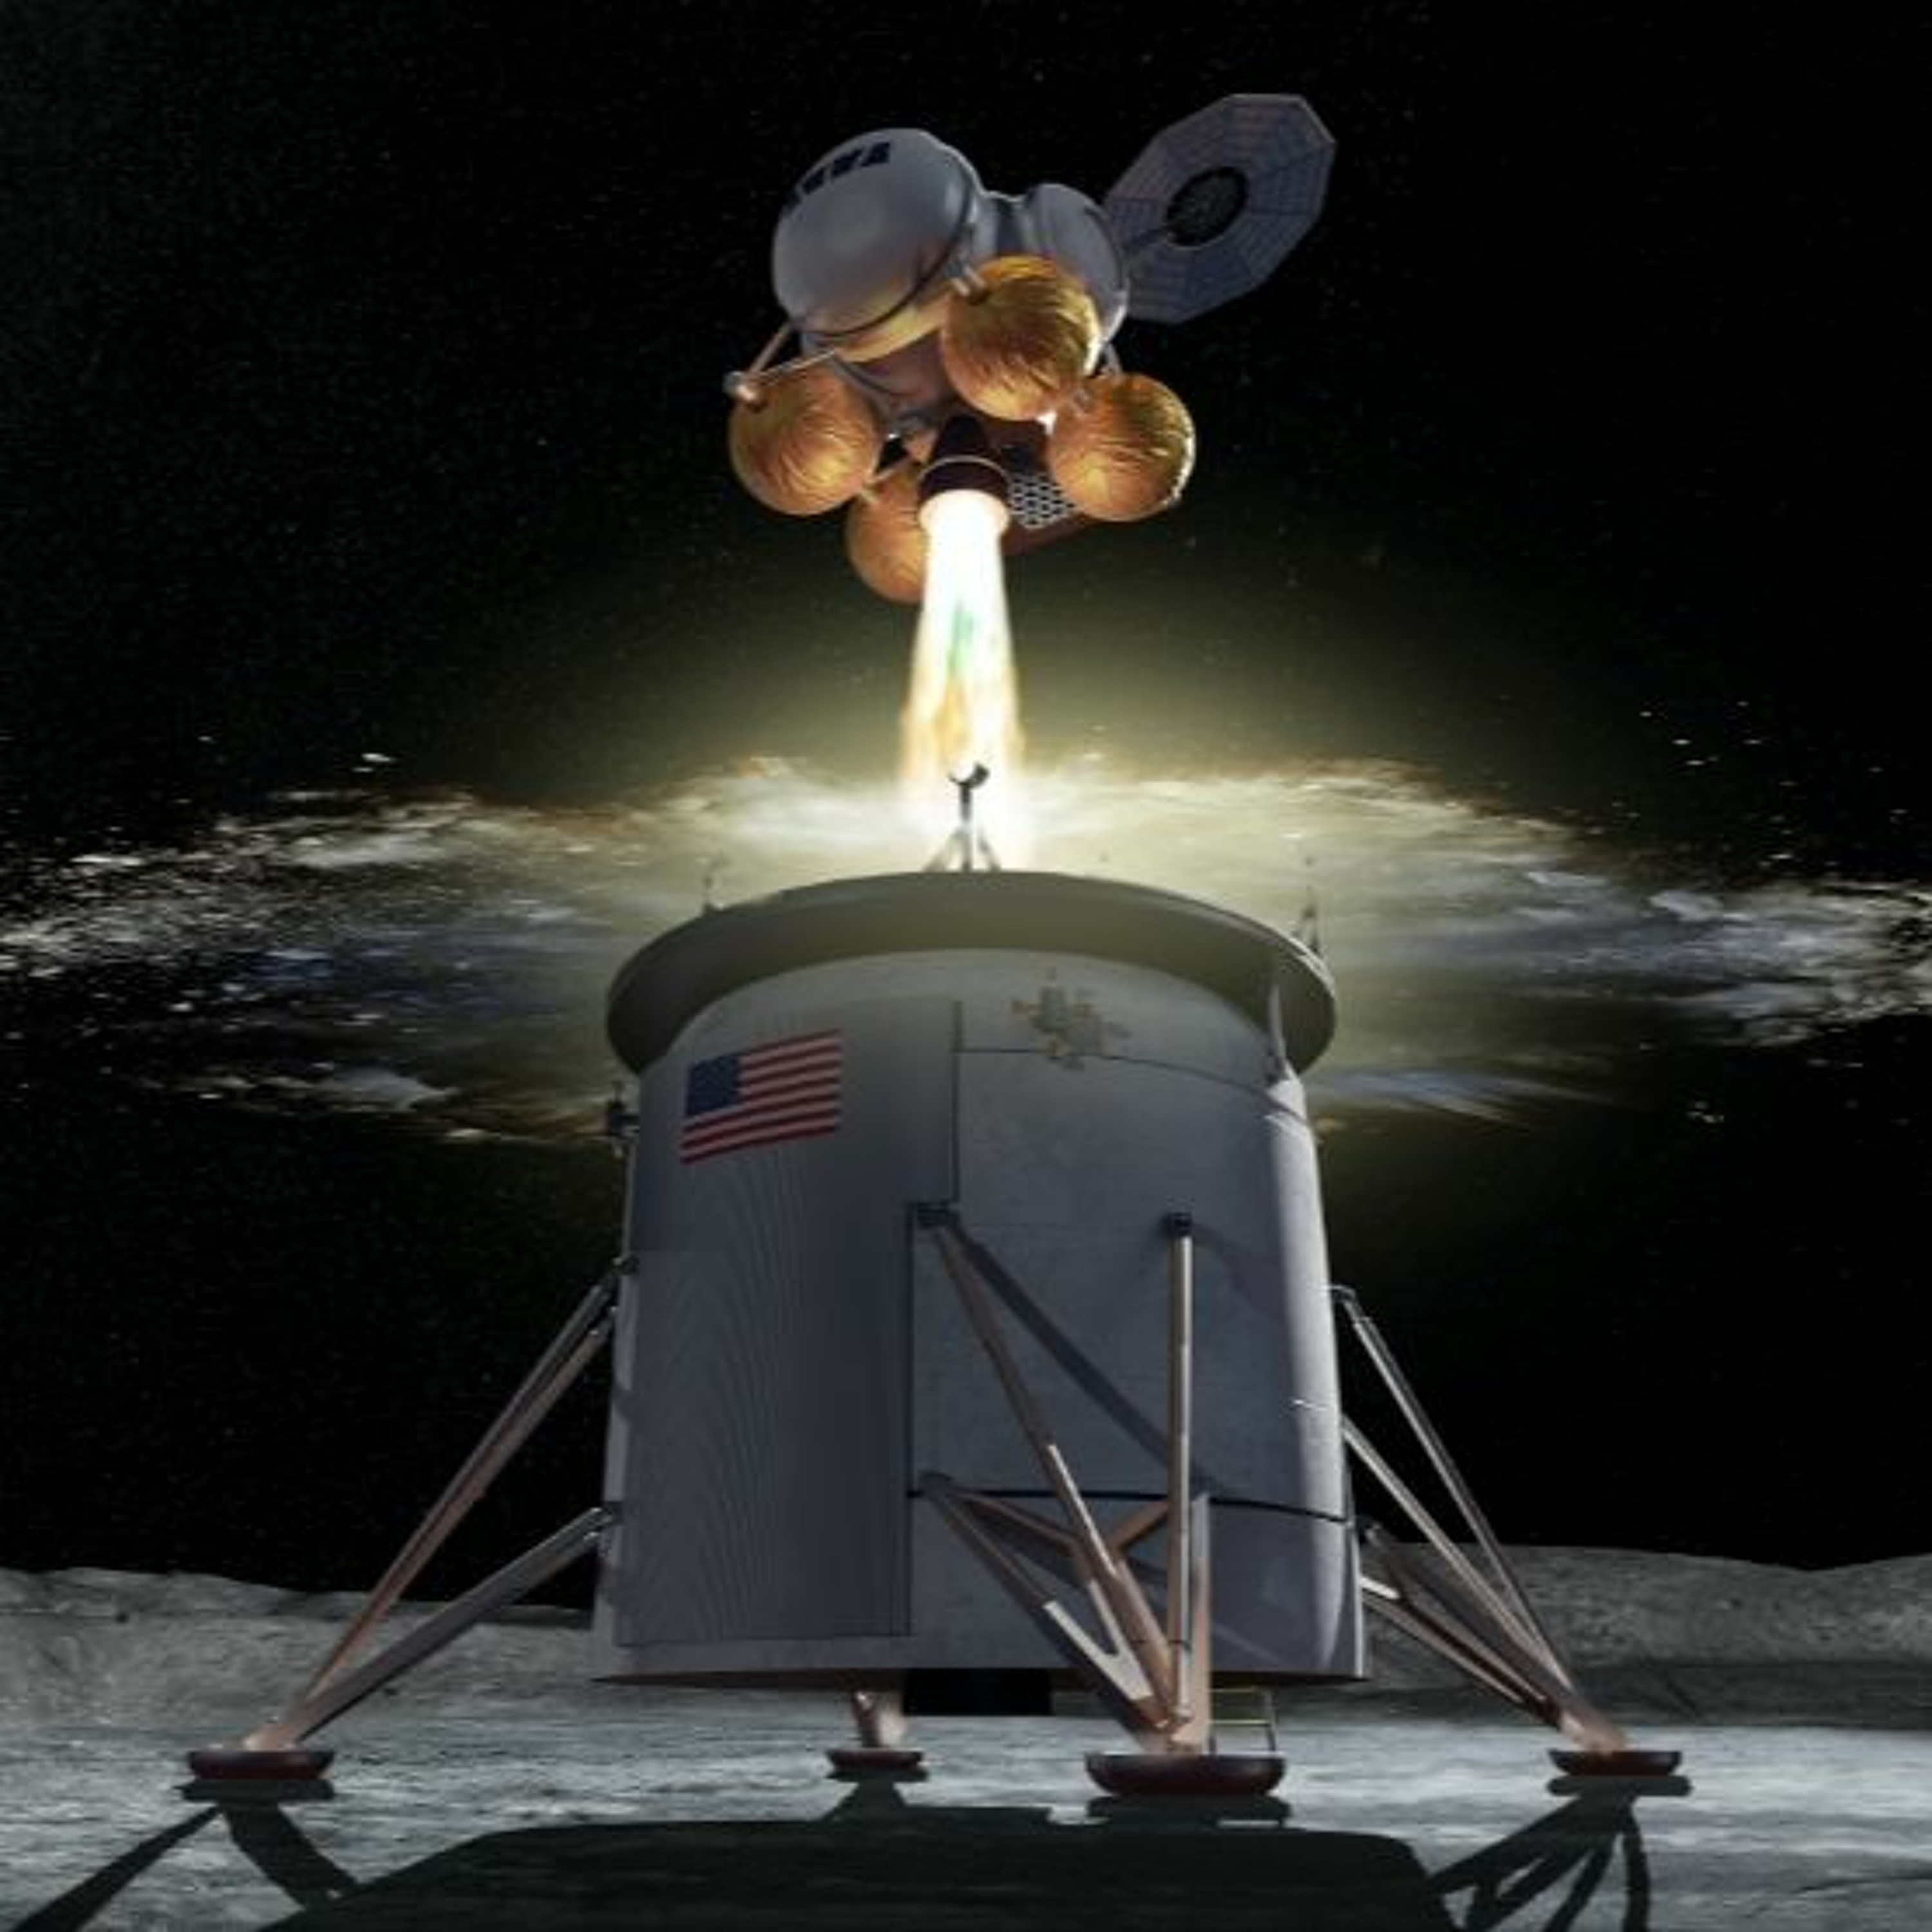 Mike Gold Update on the Artemis Accords and Space Resources